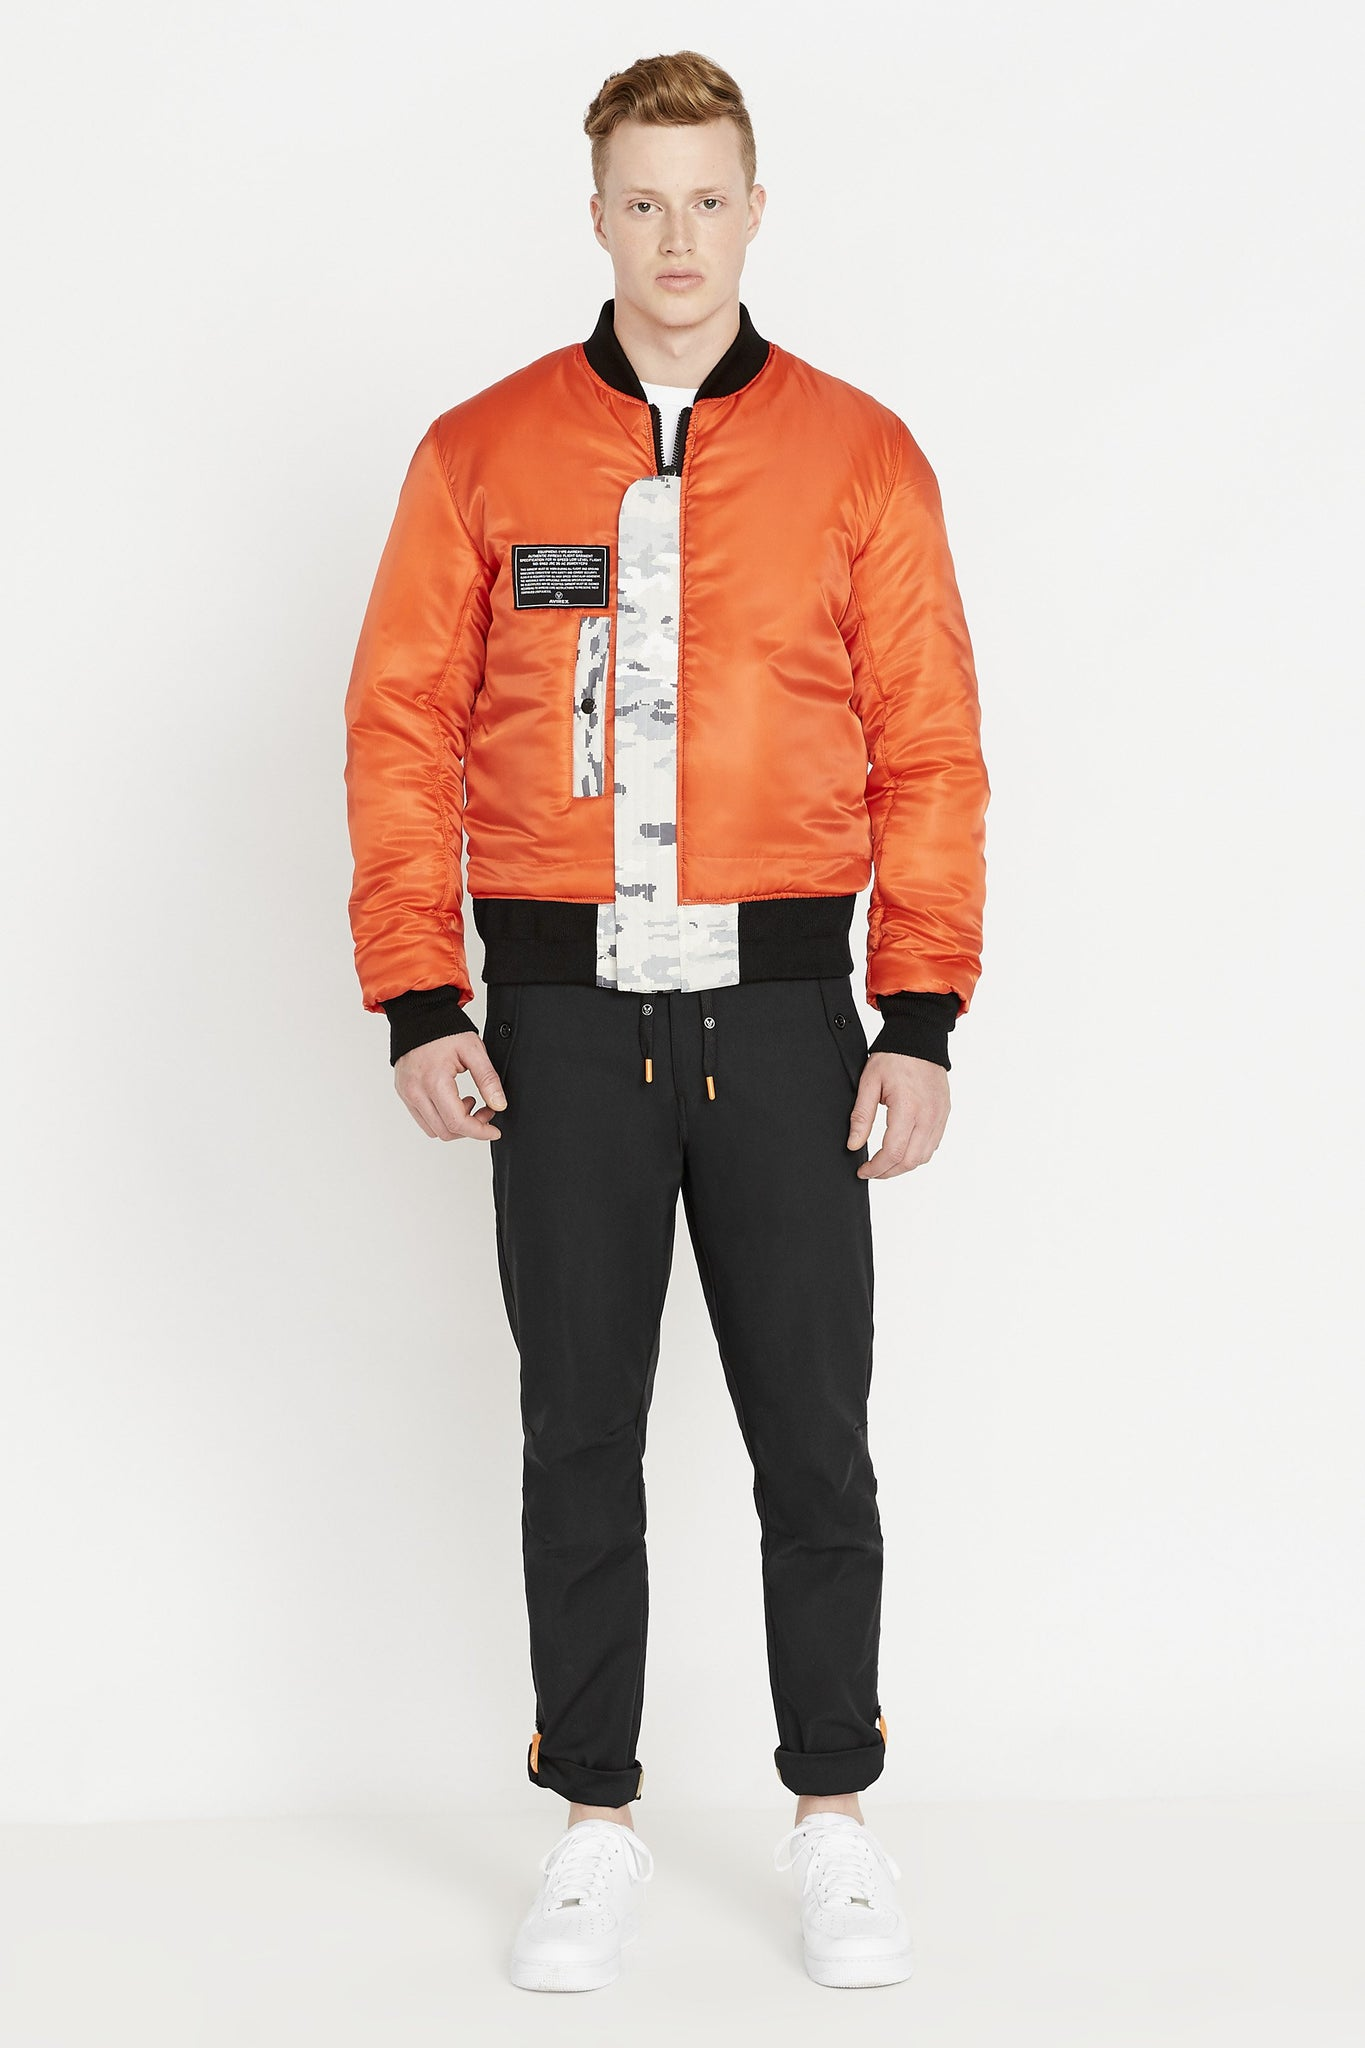 Full front view of men wearing a fully zipped reversed orange bomber jacket with one patch and one pocket on the right chest and black pants